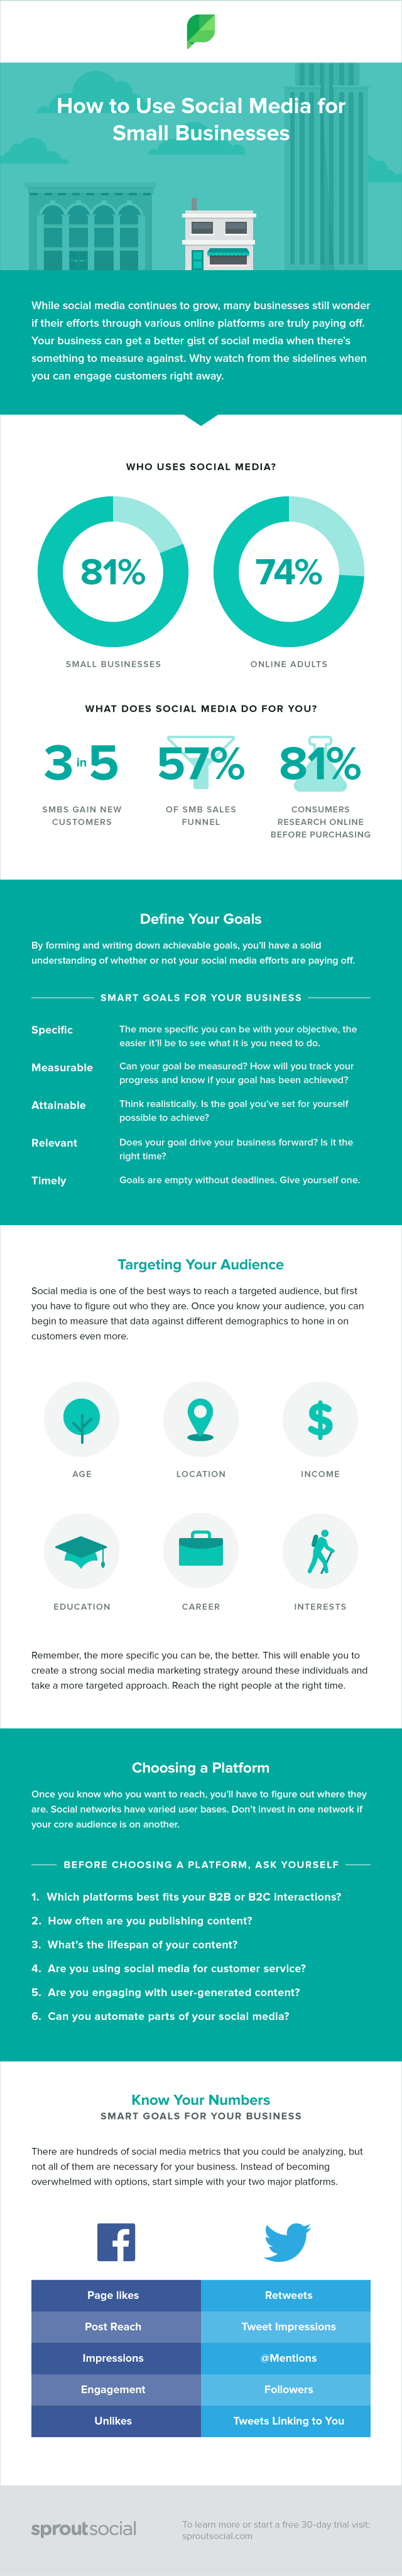 Infographic – How to Use Social Media for Small Business